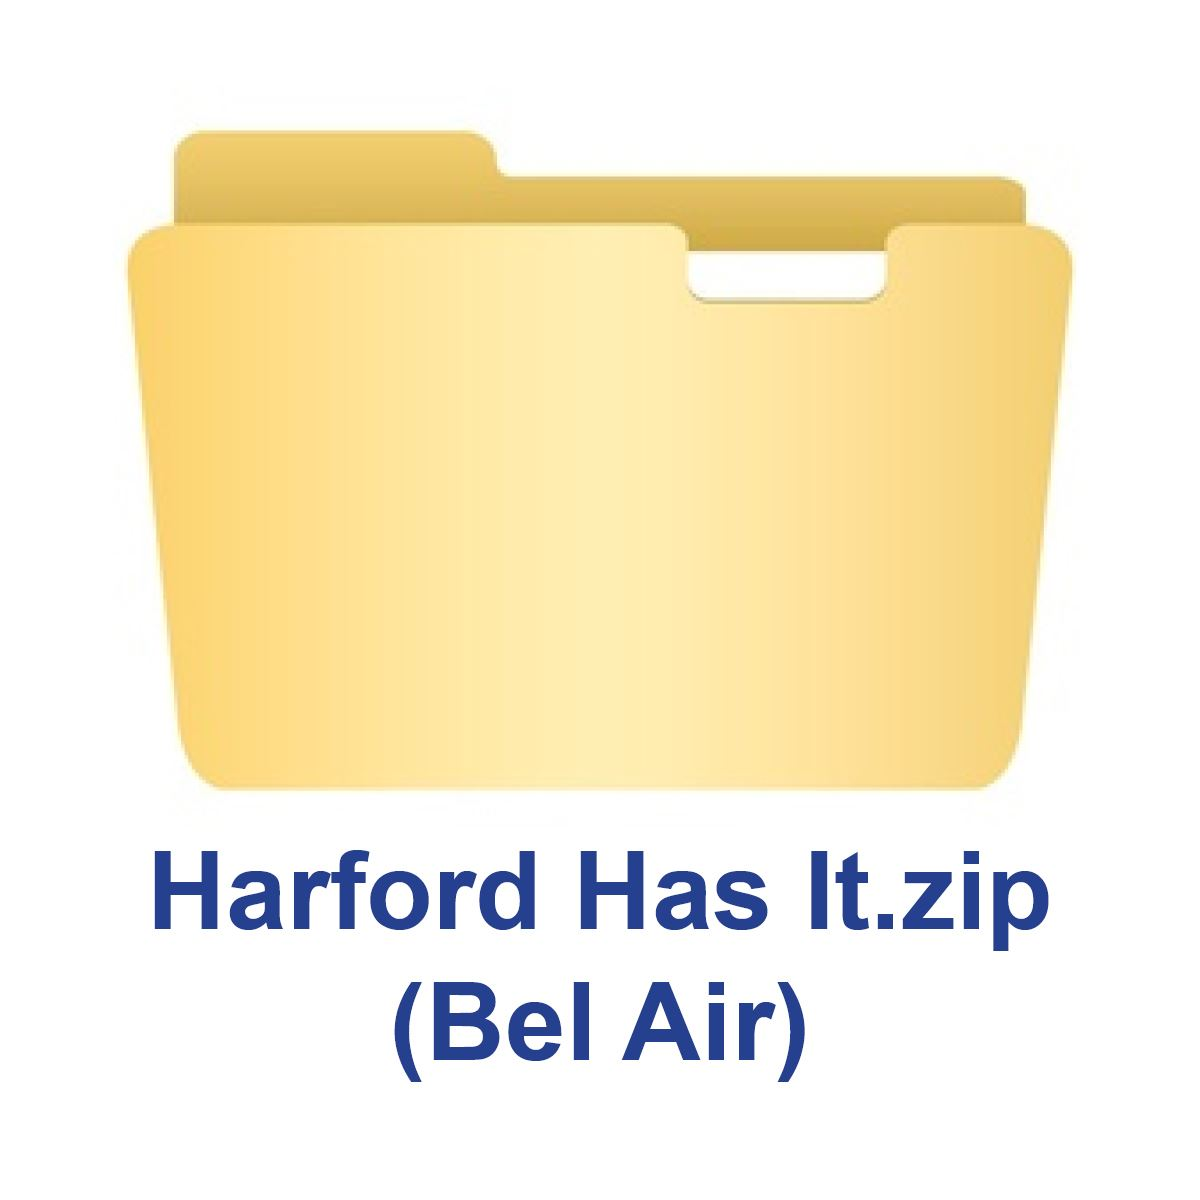 Zip Folder Icon_Bel Air